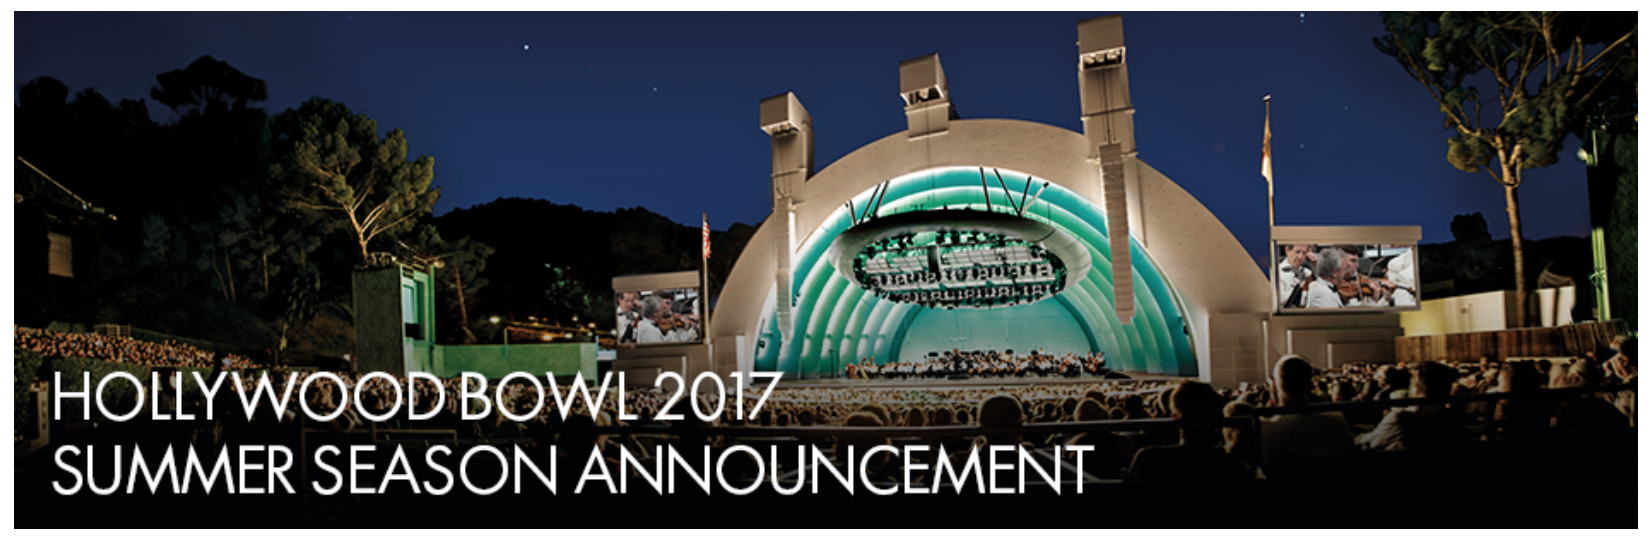 Hollywood Bowl 2017 season